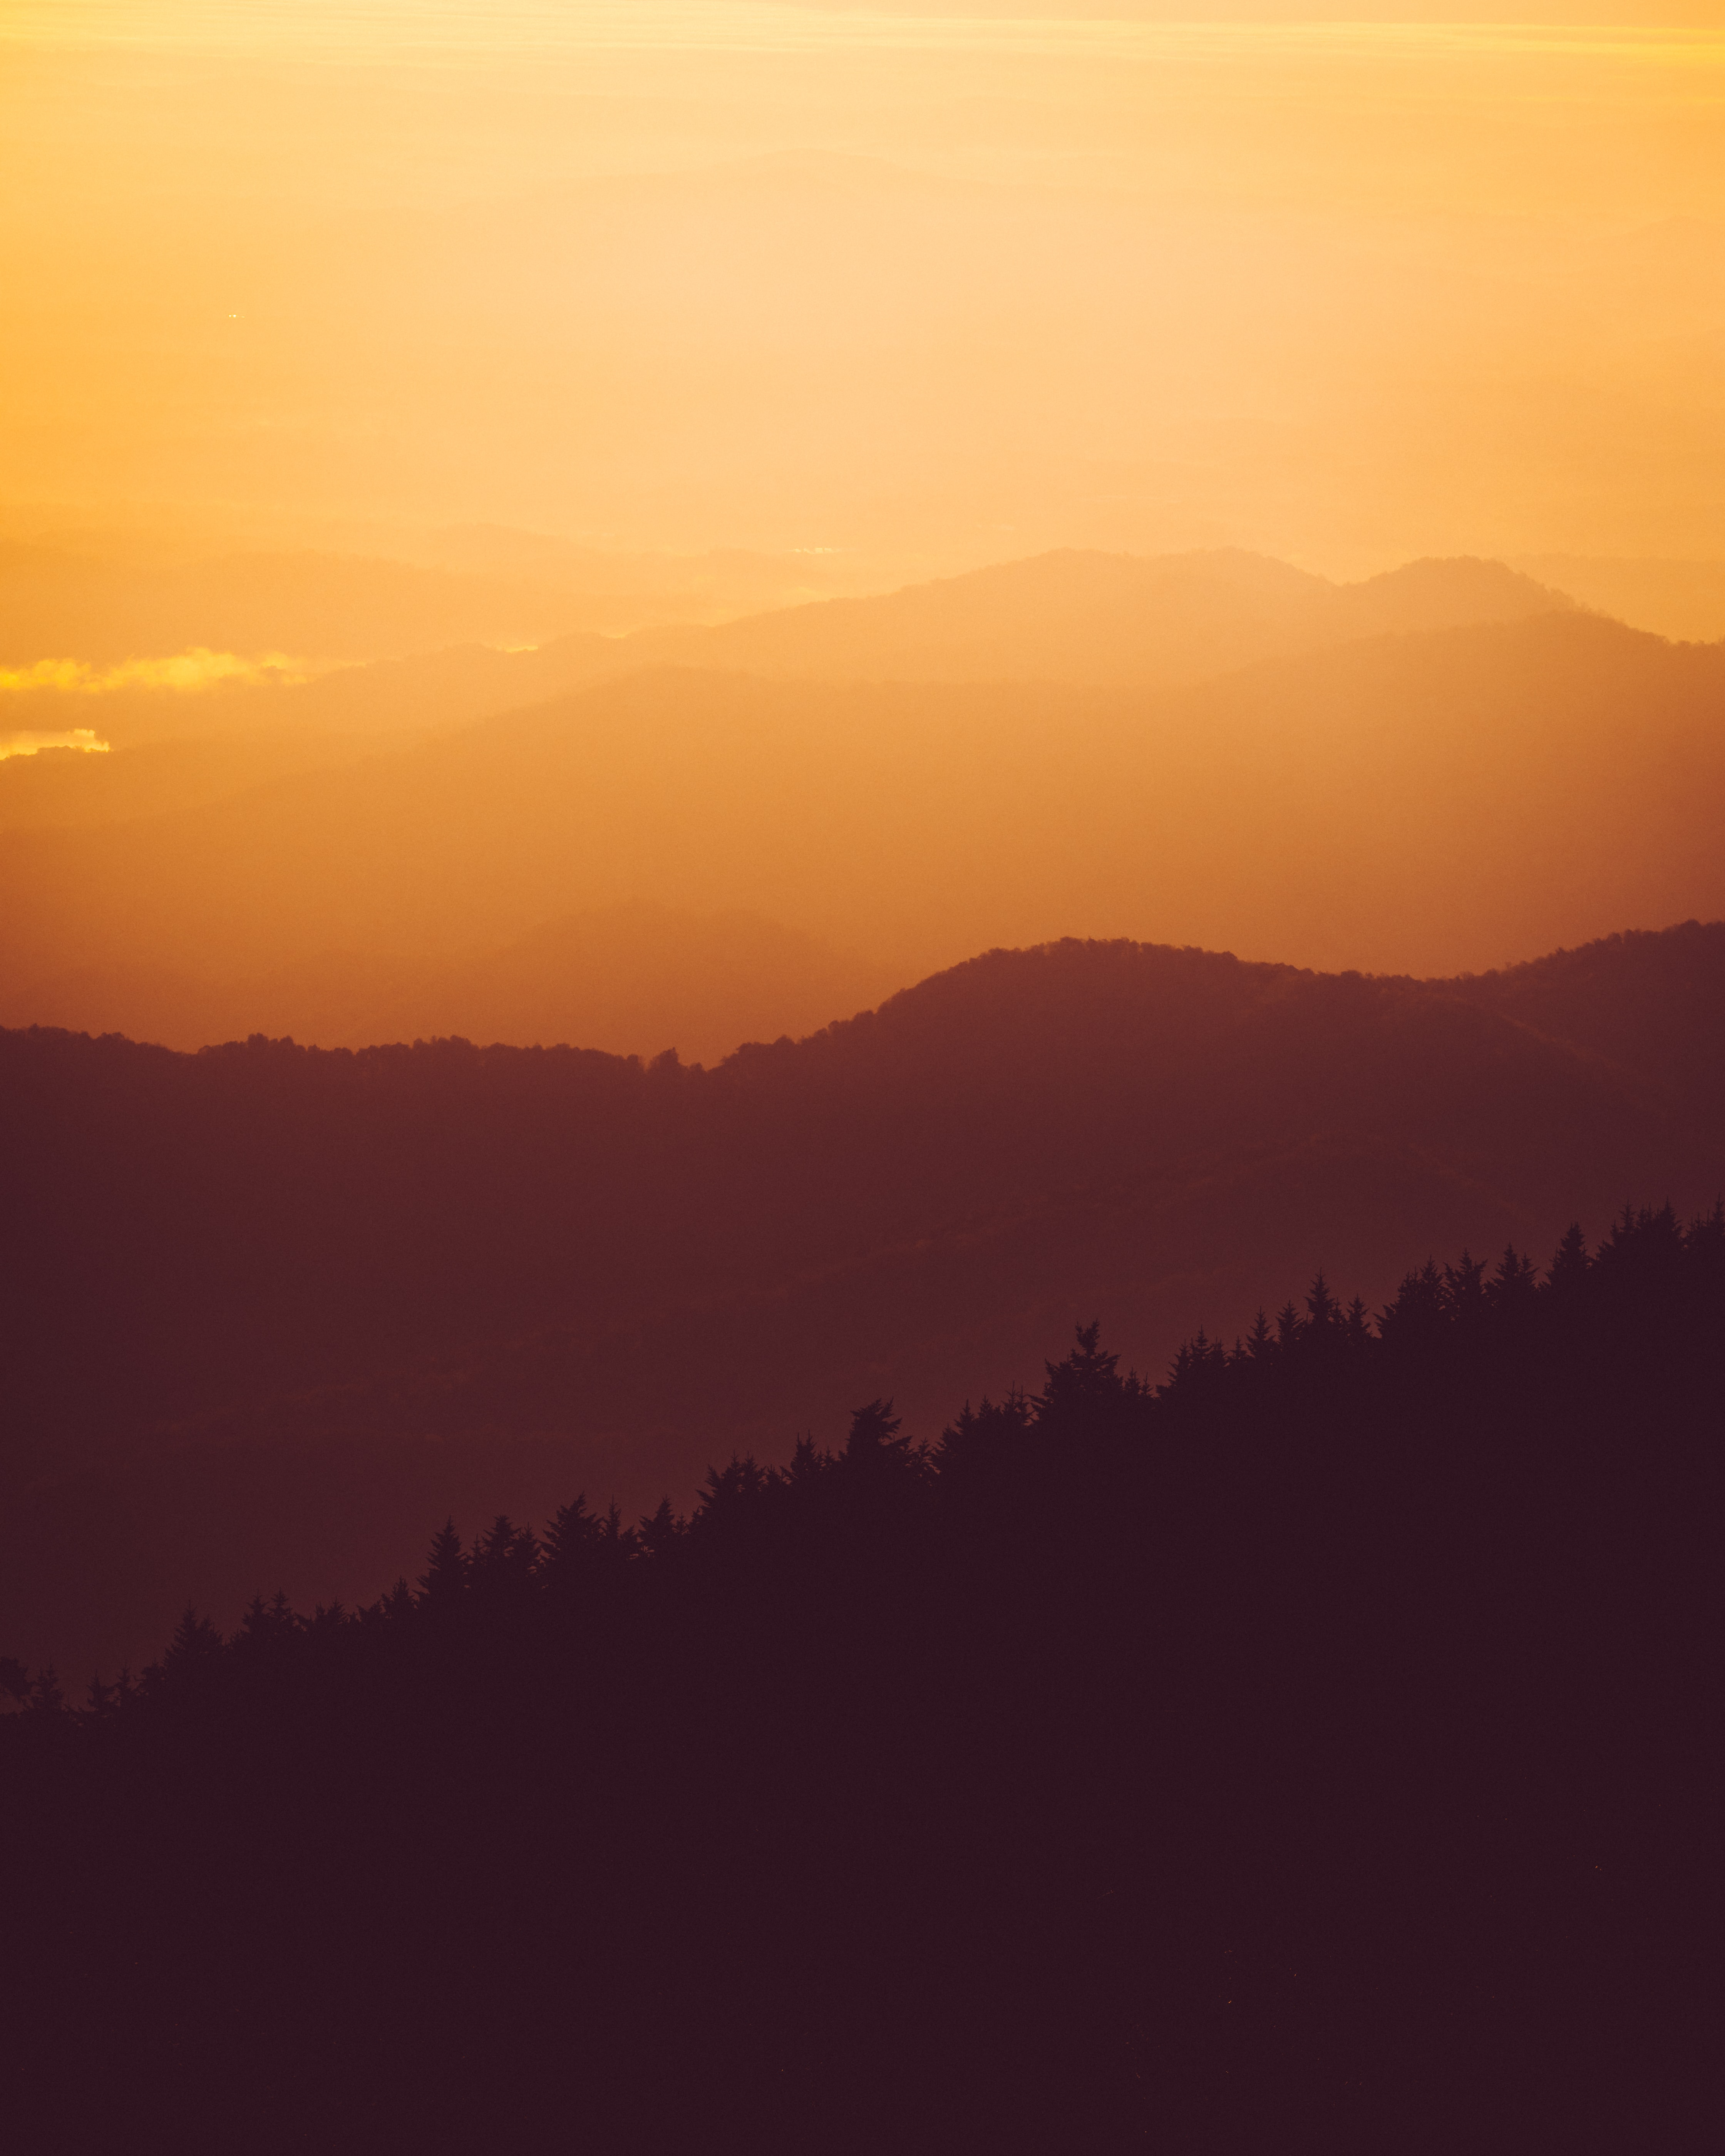 landscape photo of mountains at golden hour